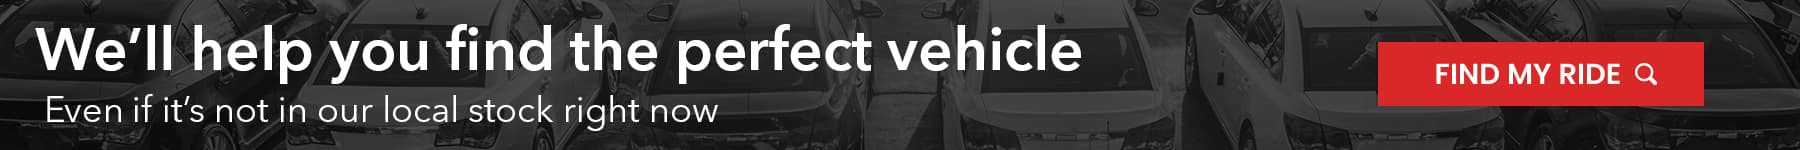 Find the perfect vehicle even if its not in stock